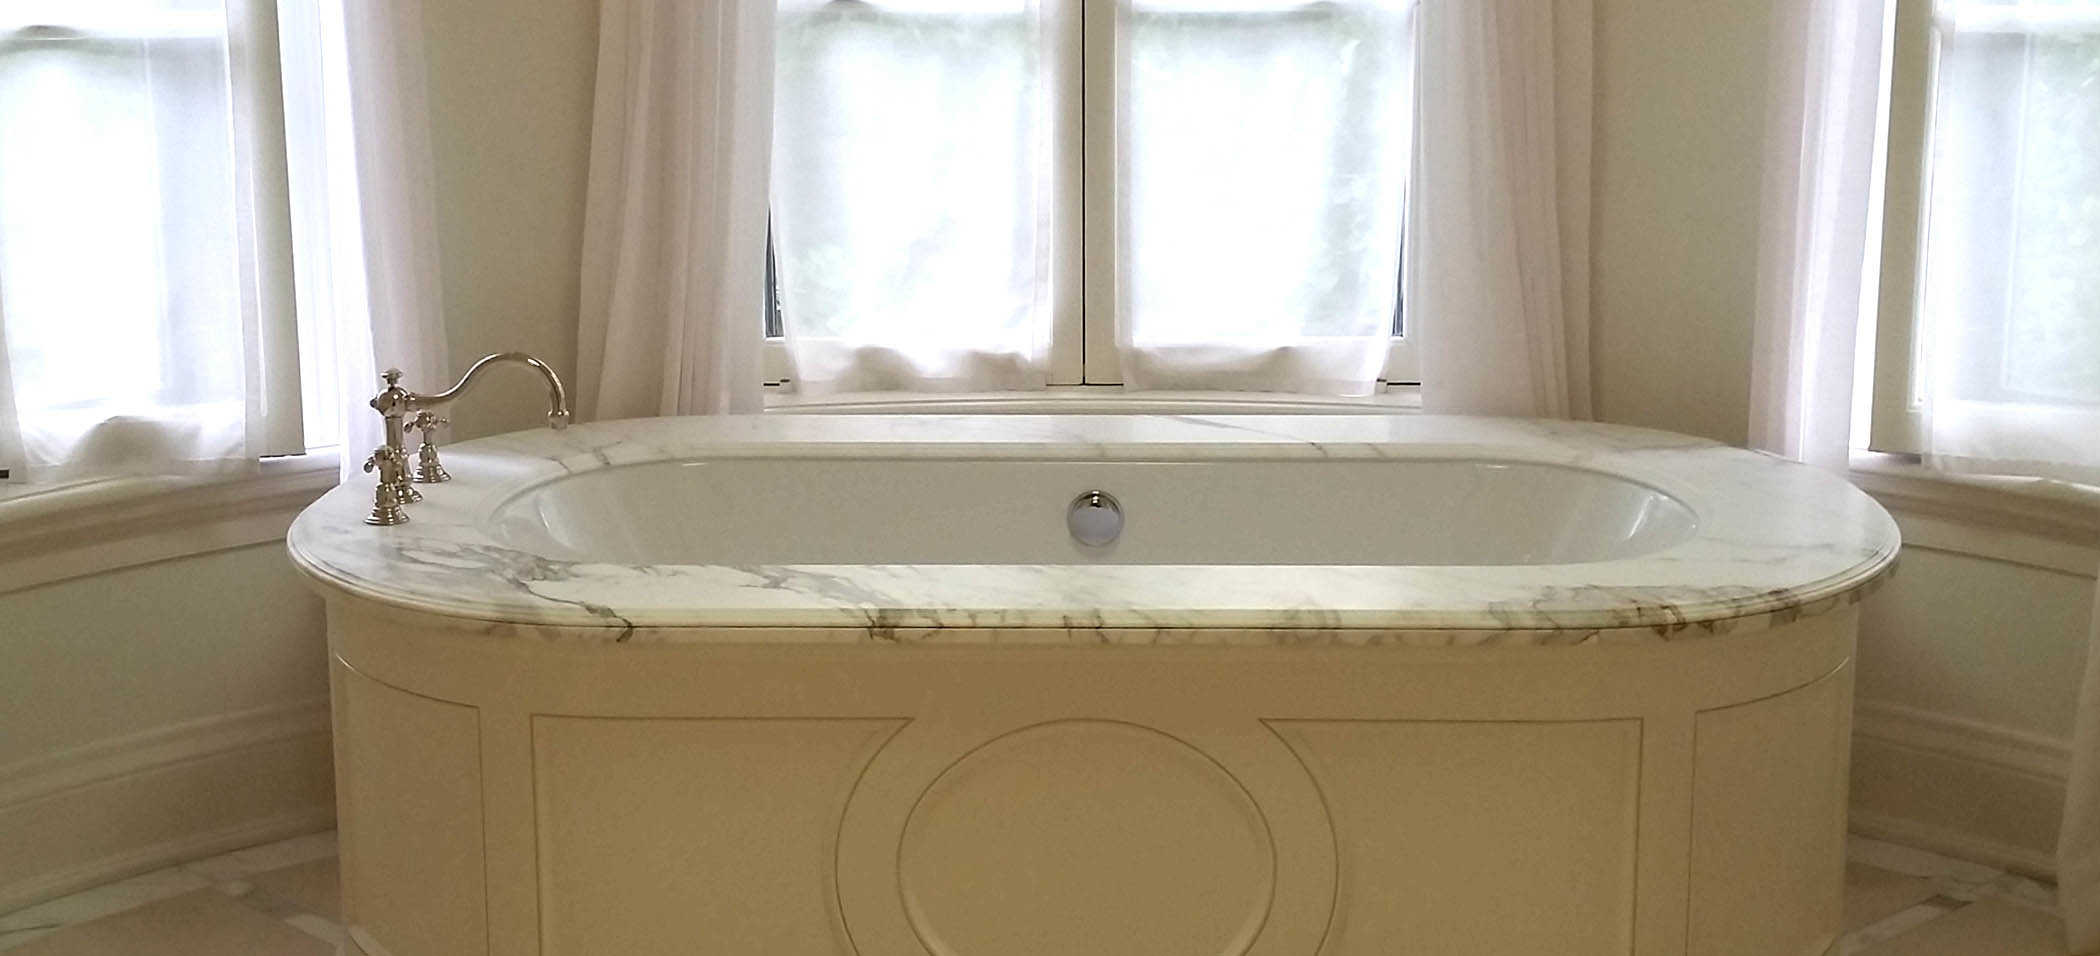 Honed marble tub surround.